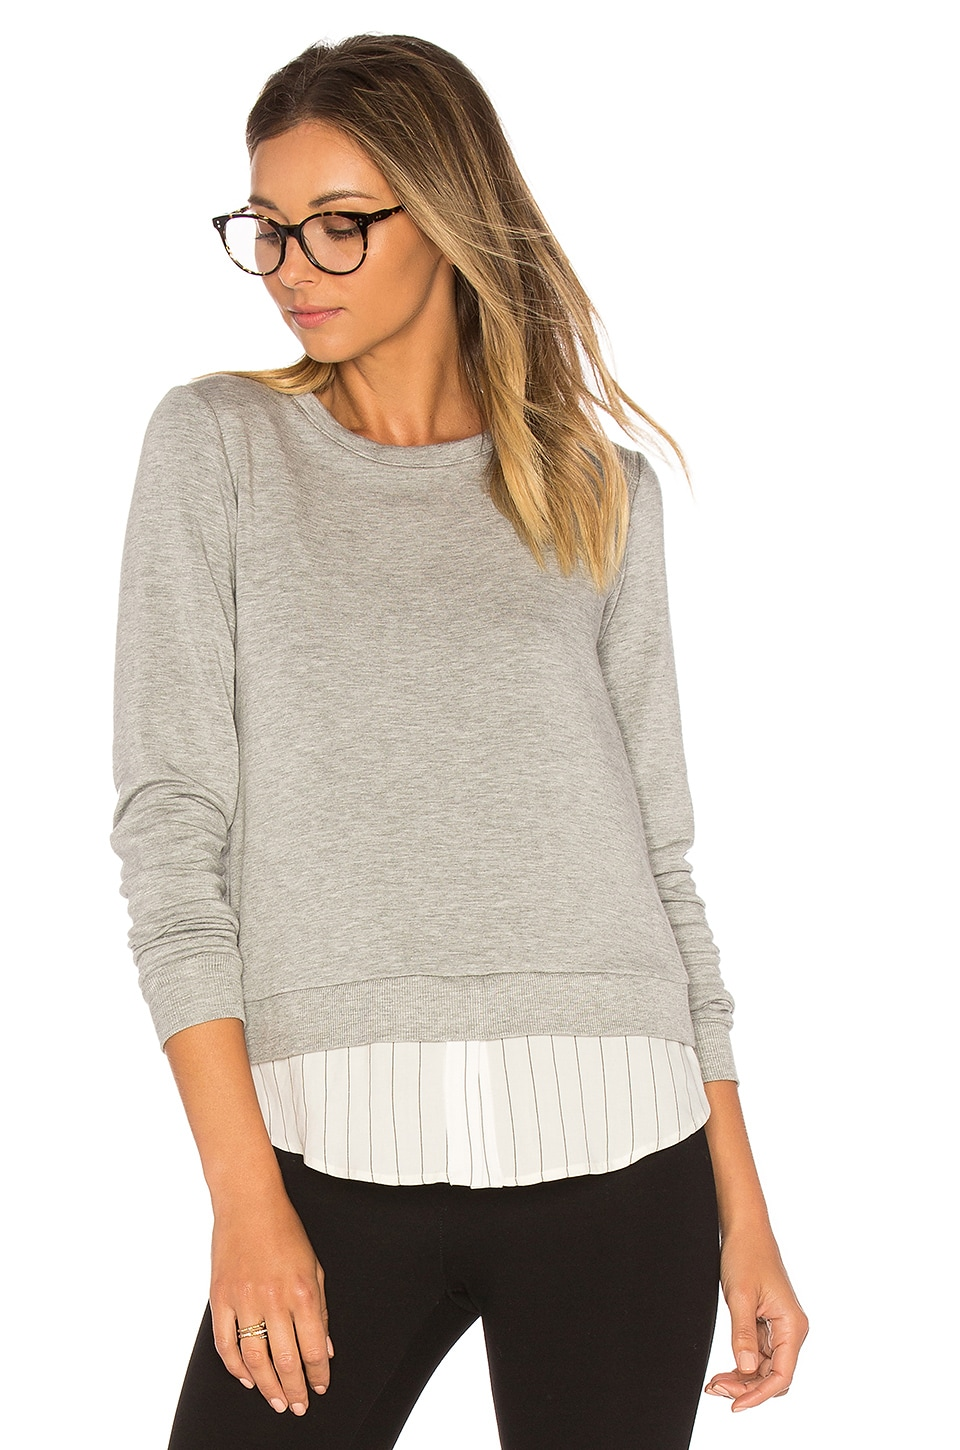 Bailey 44 Soft Shackel Sweatshirt in Heather Grey